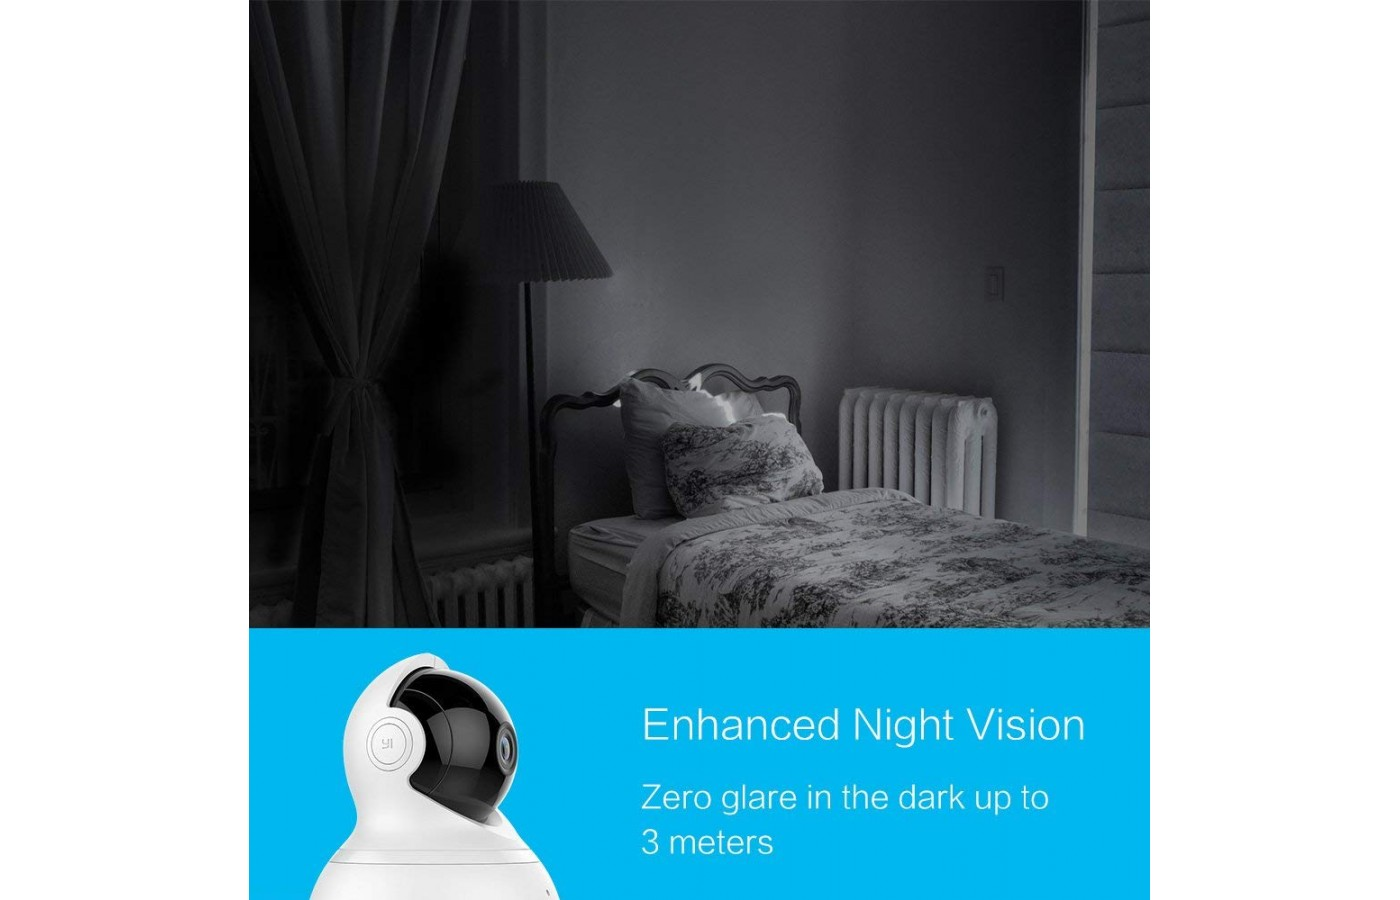 The YI Dome offers night vision with zero glare.